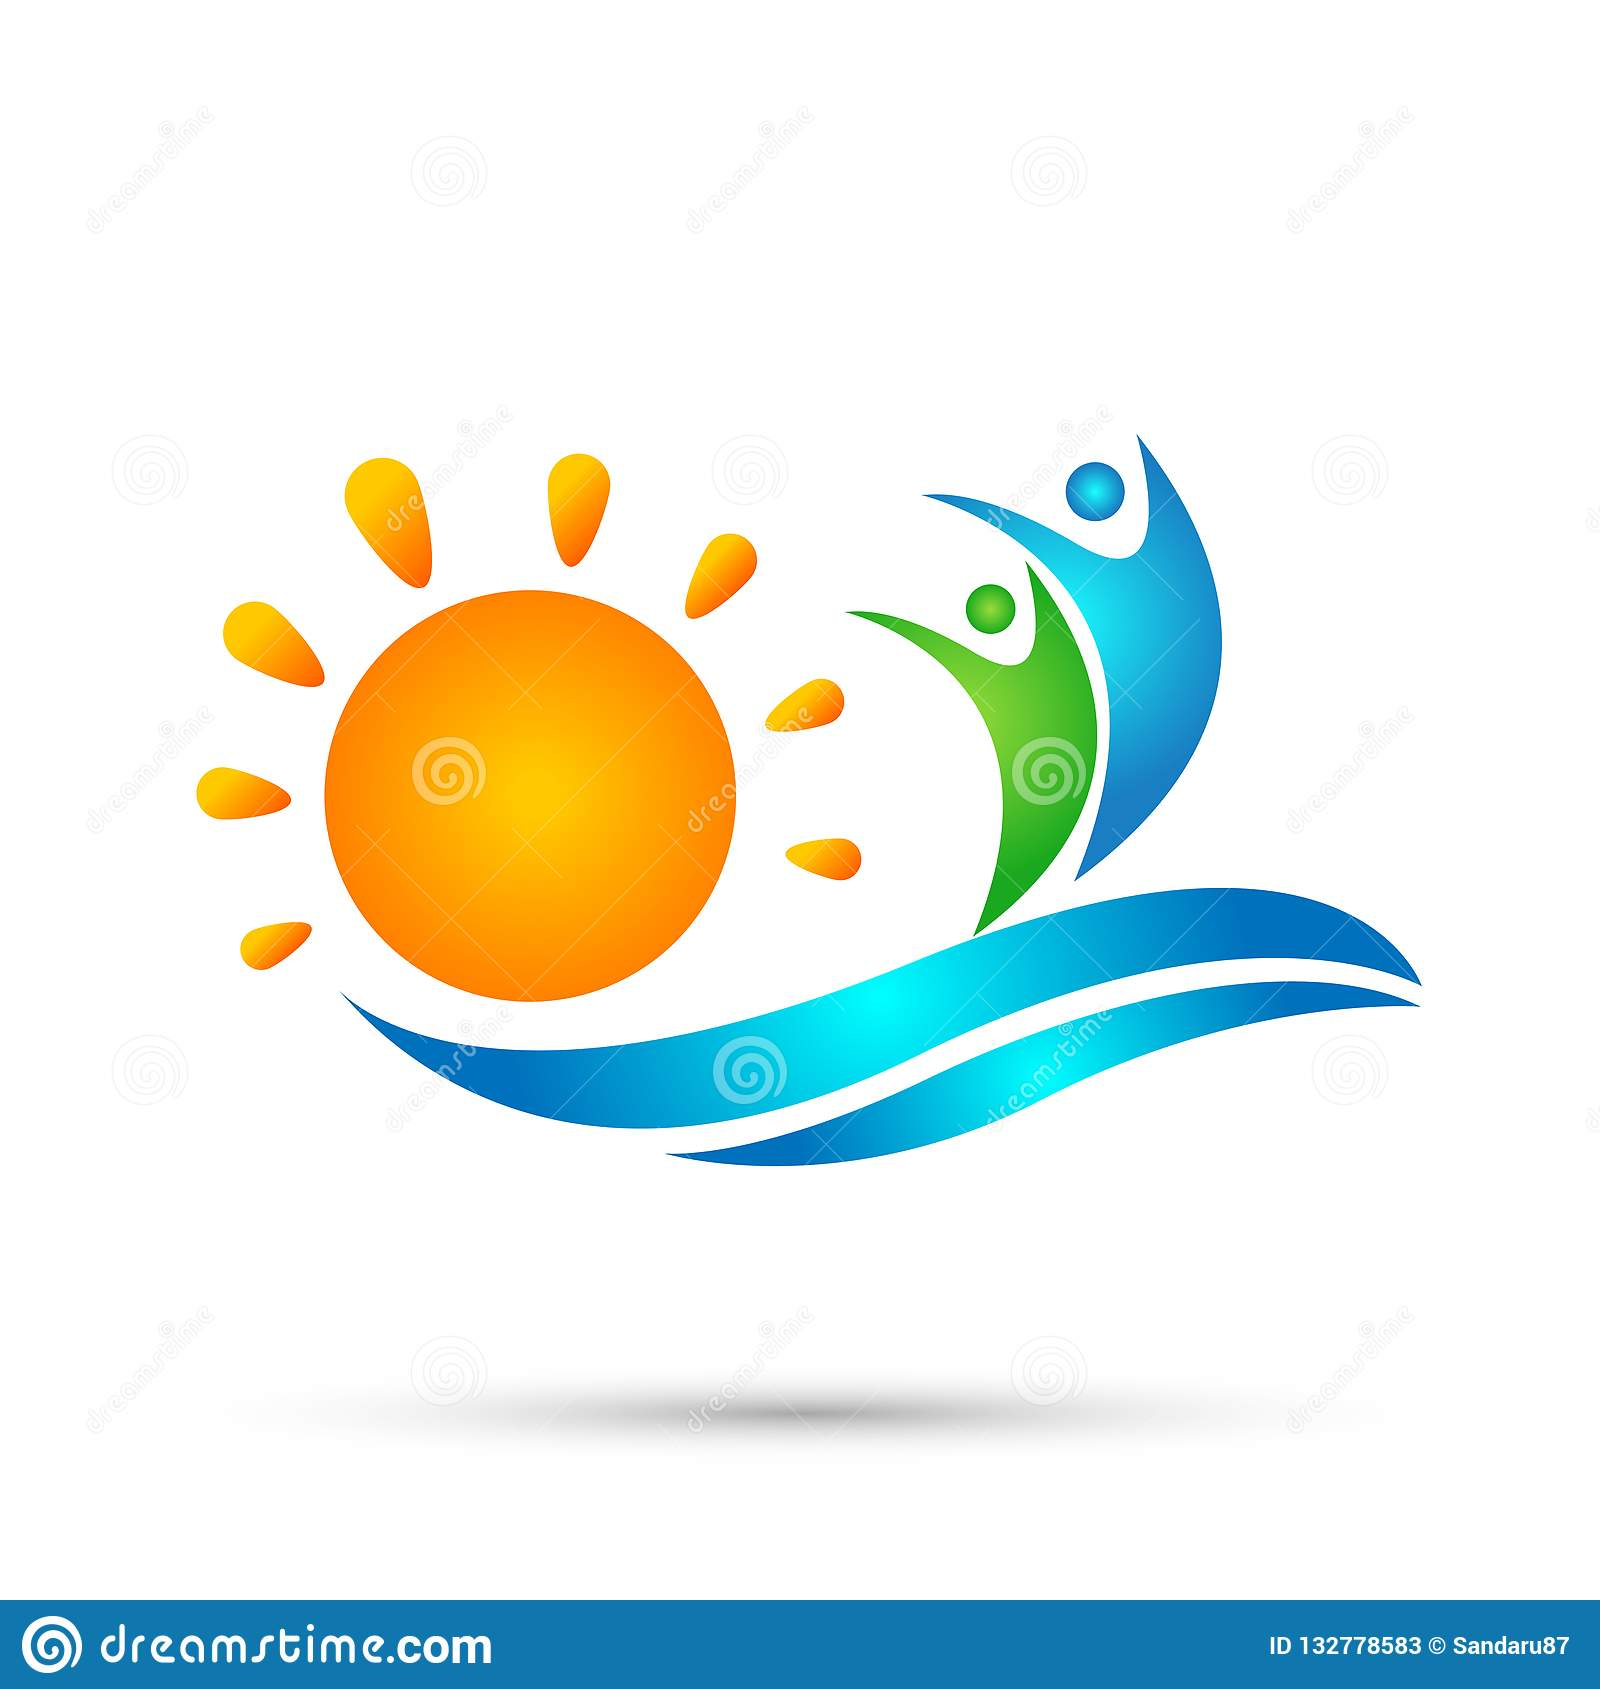 Sun beach water wave people team work union wellness celebration group work concept symbol icon design vector on white background